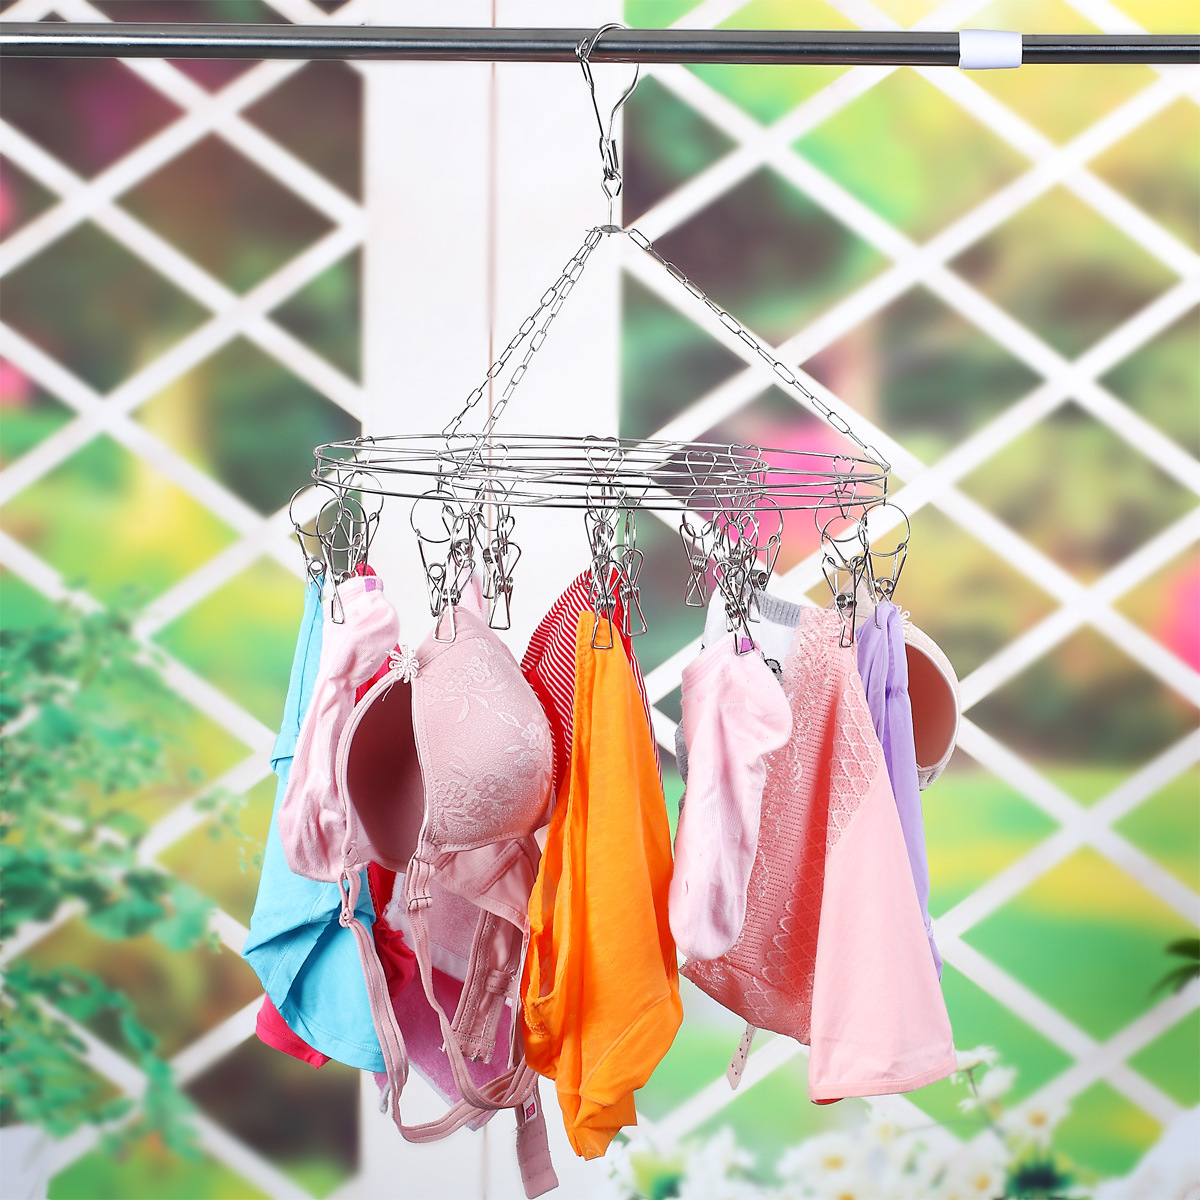 Laundry Clothesline Hanging Rack for Drying Clothing Set of 16 Clips Stainless Steel Clothespins Round in Drying Racks Nets from Home Garden